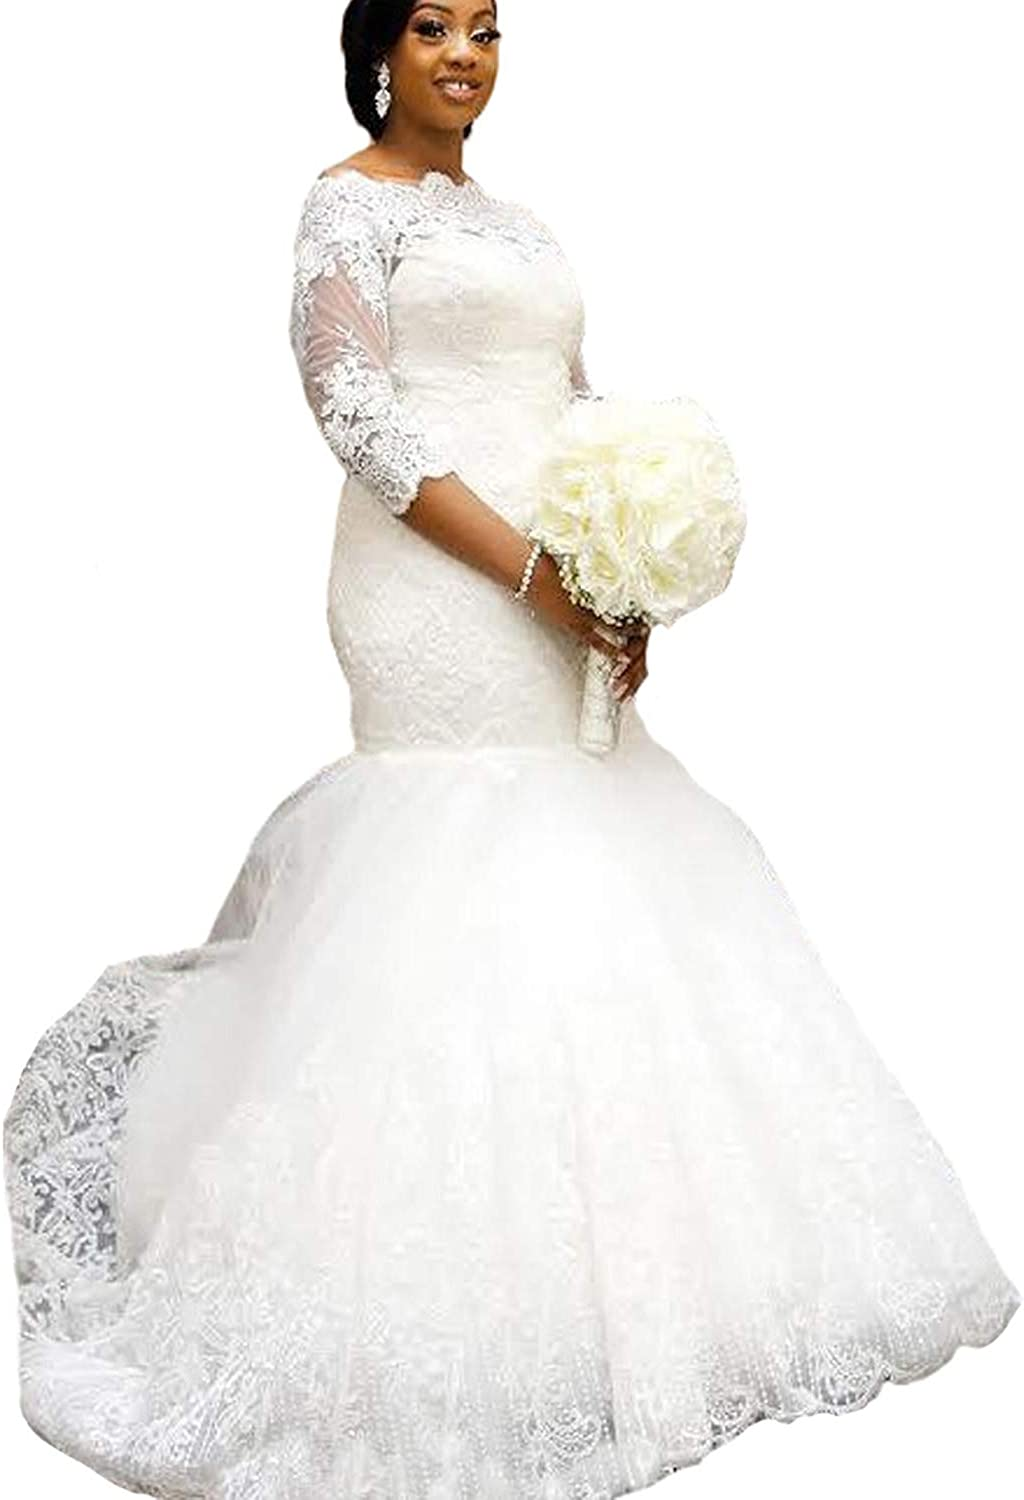 Yuxin Elegant Plus Size Wedding Dress 2020 Long Sleeves Appliqued Lace Mermaid Bridal Gowns At Amazon Women S Clothing Store